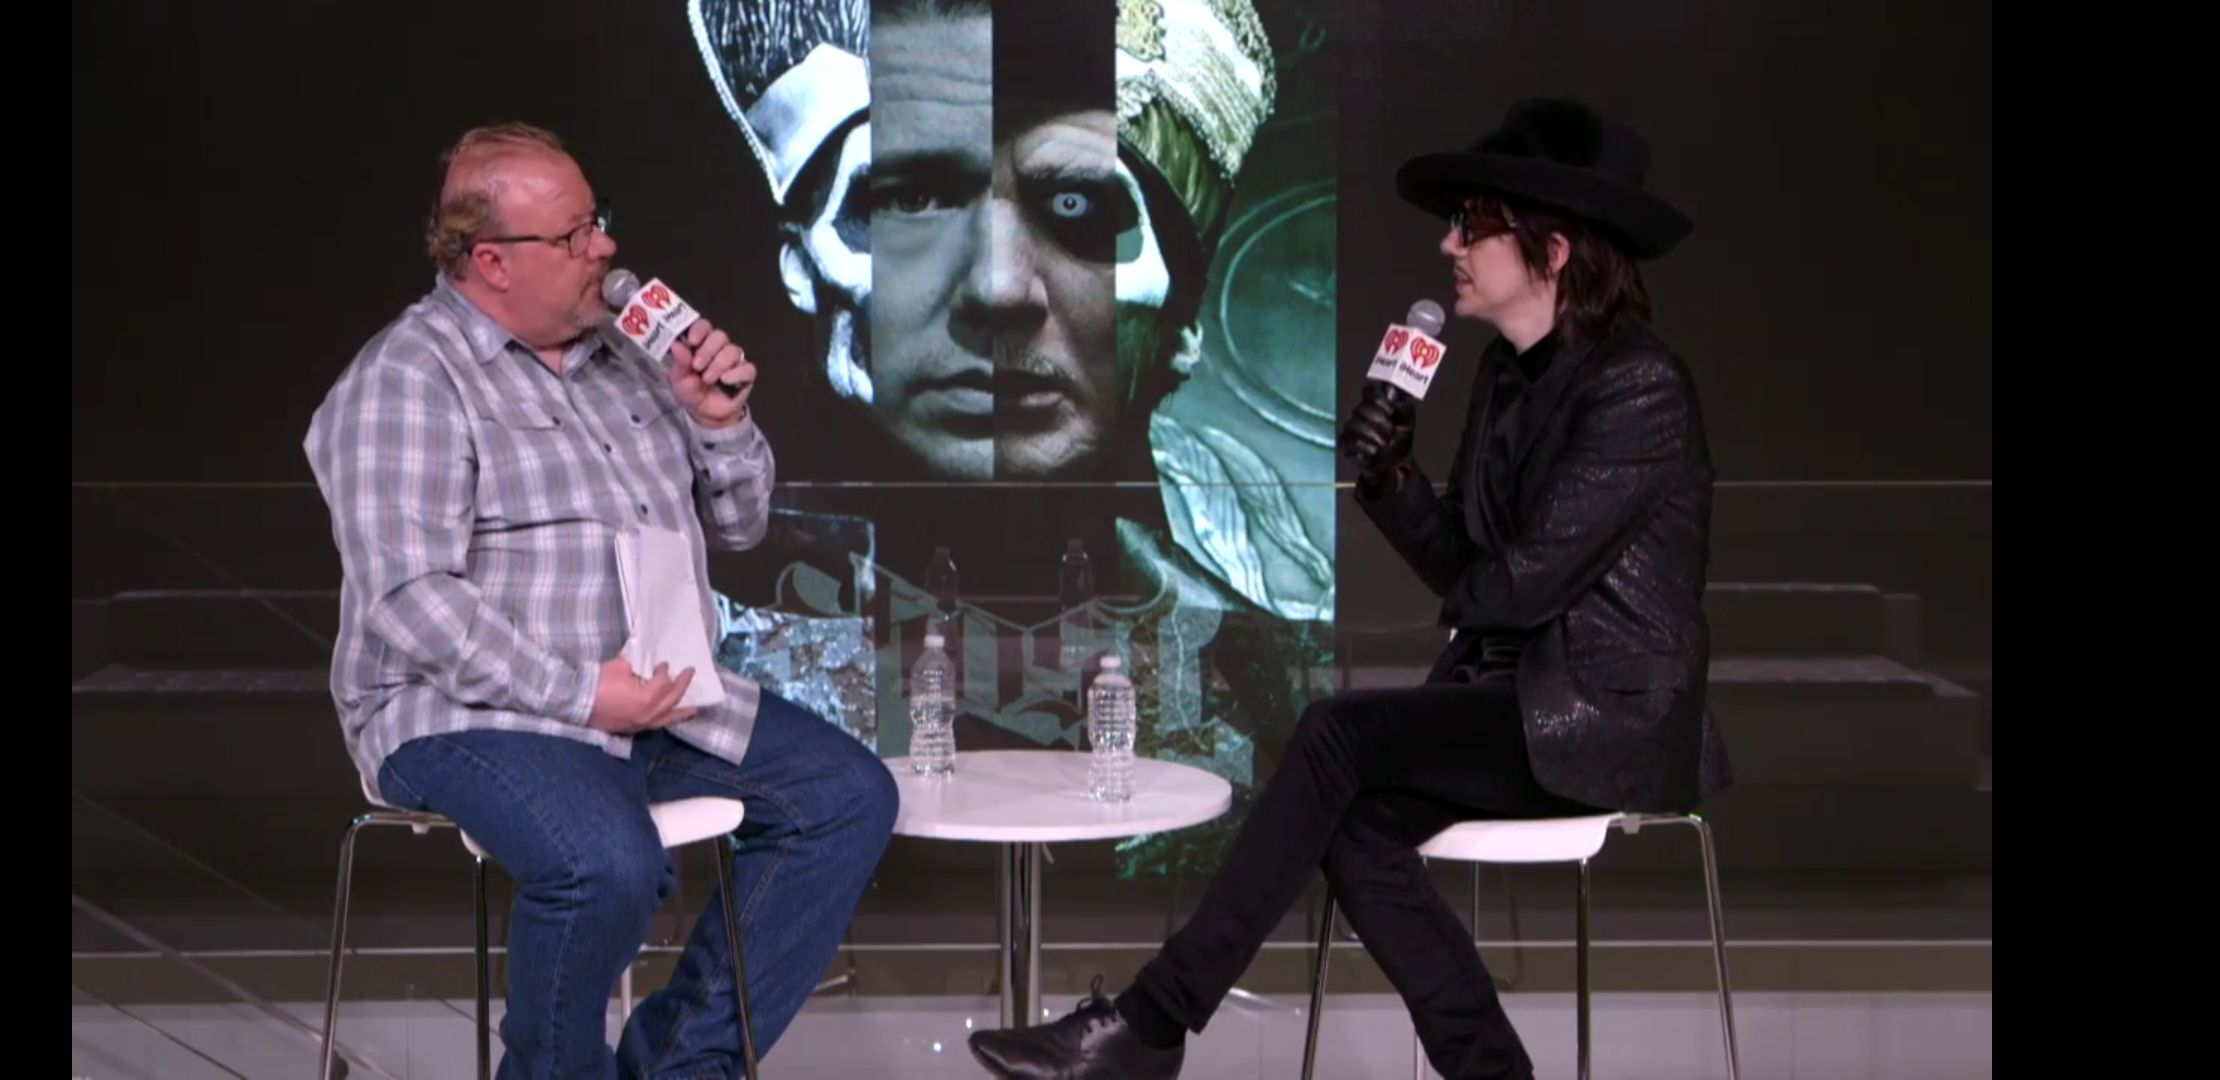 Tobias Forge: Ghost interview with iHeartRadio crashes and burns